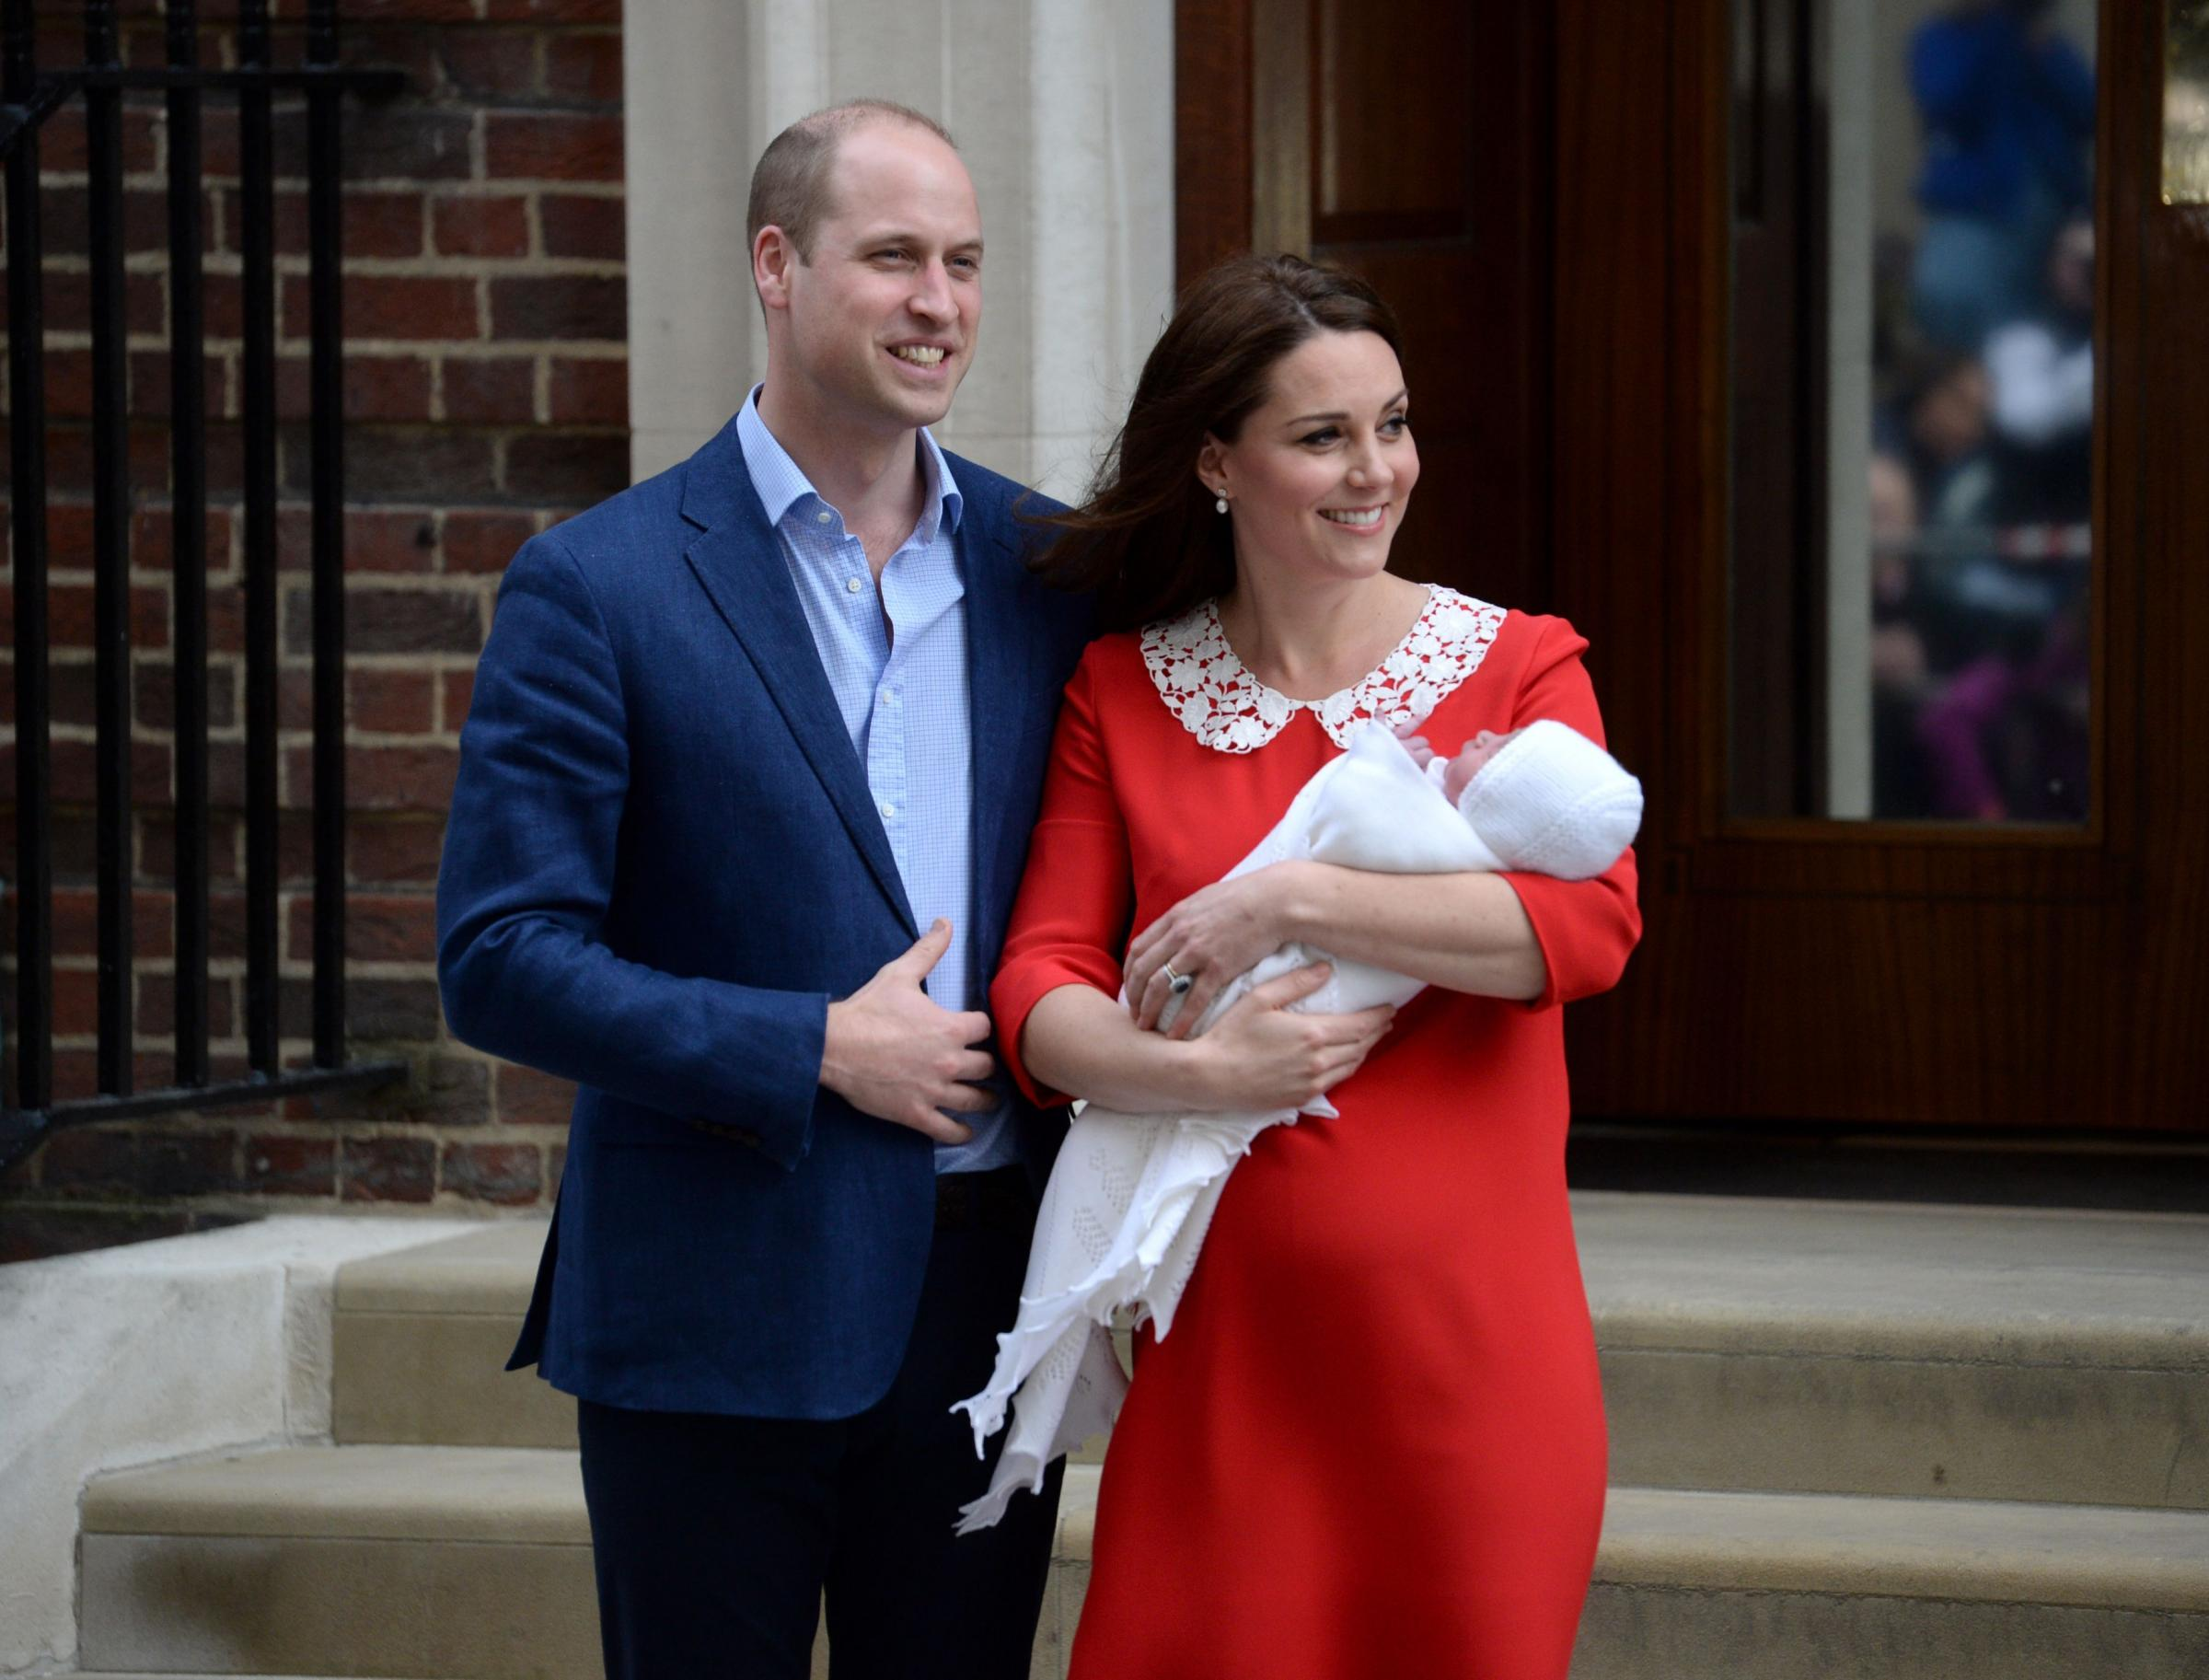 The Duke and Duchess of Cambridge and their newborn son outside the Lindo Wing at St Mary's Hospital in Paddington, London. Photo credit: Kirsty O'Connor/PA